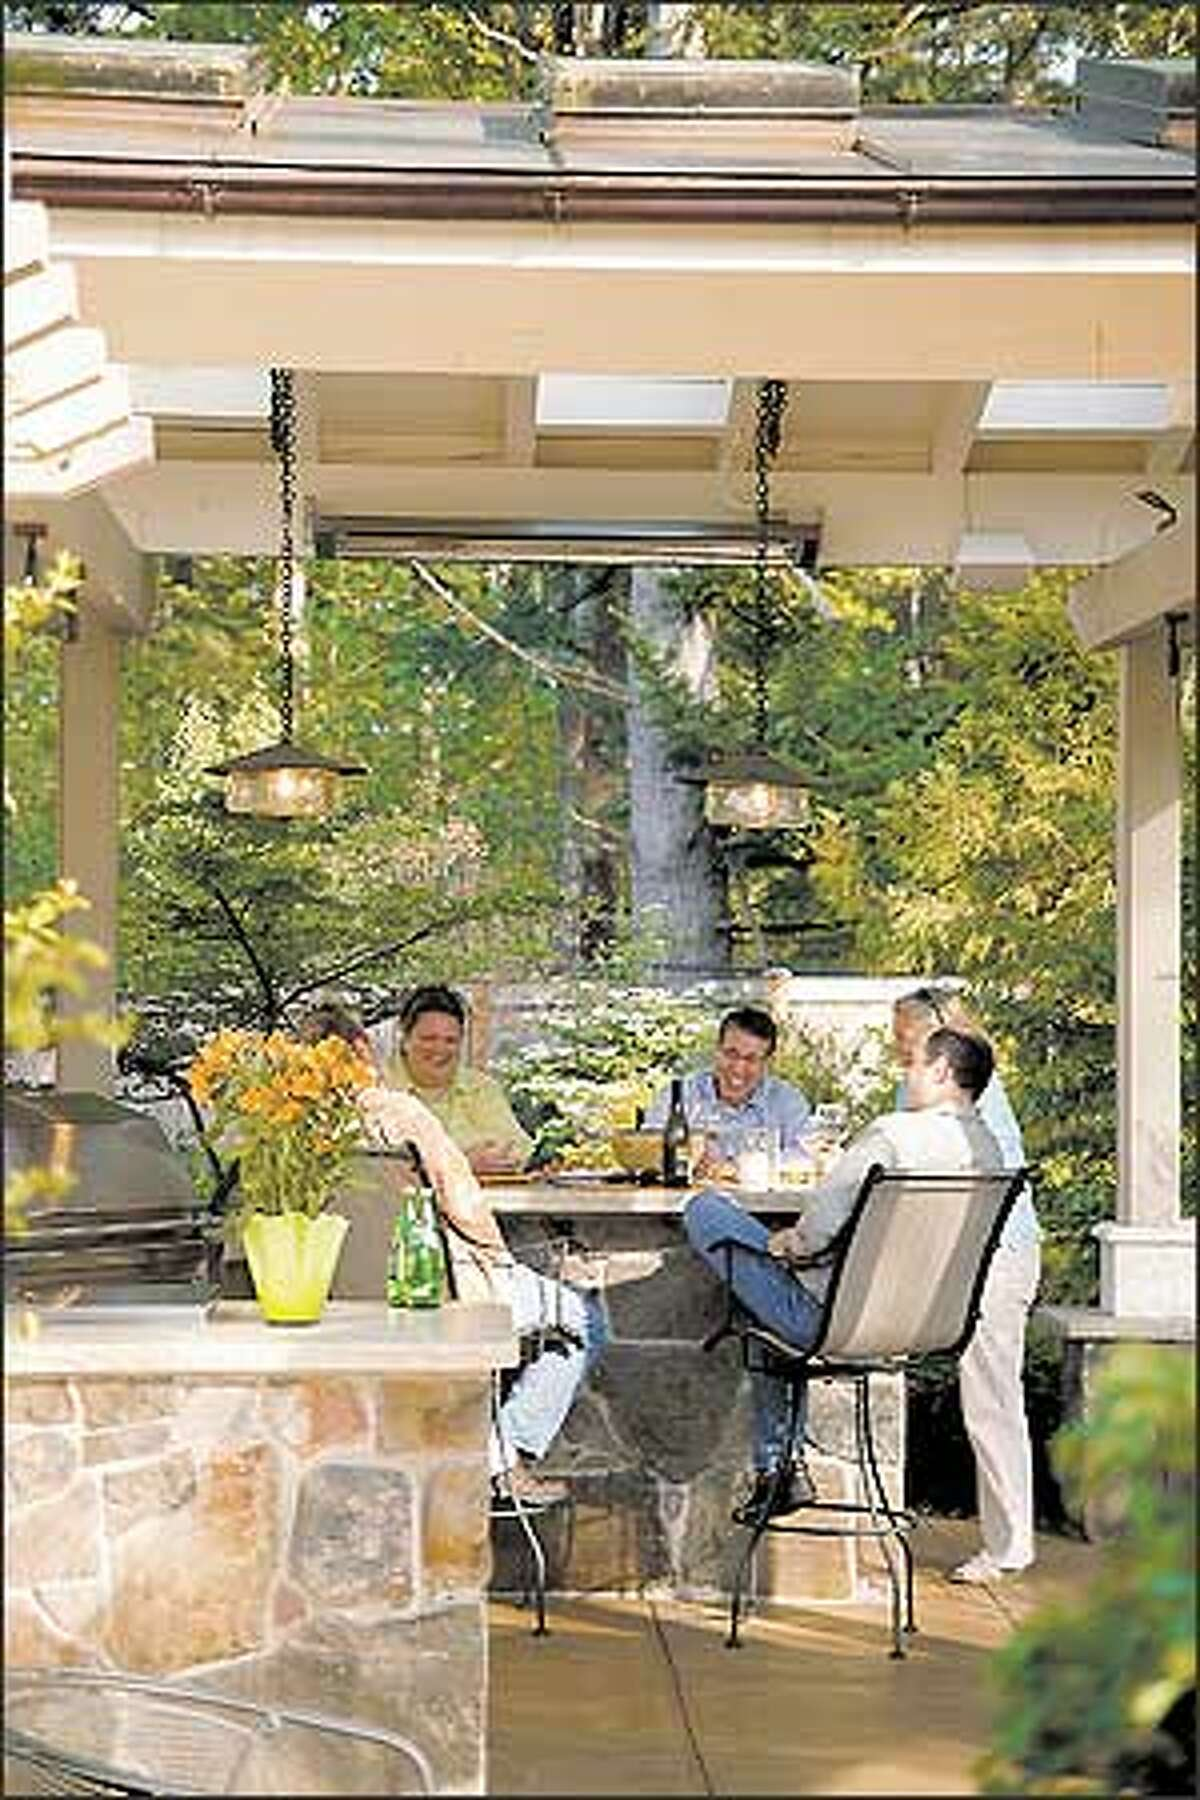 Bar stools in the covered area make this a comfortable all-weather spot.